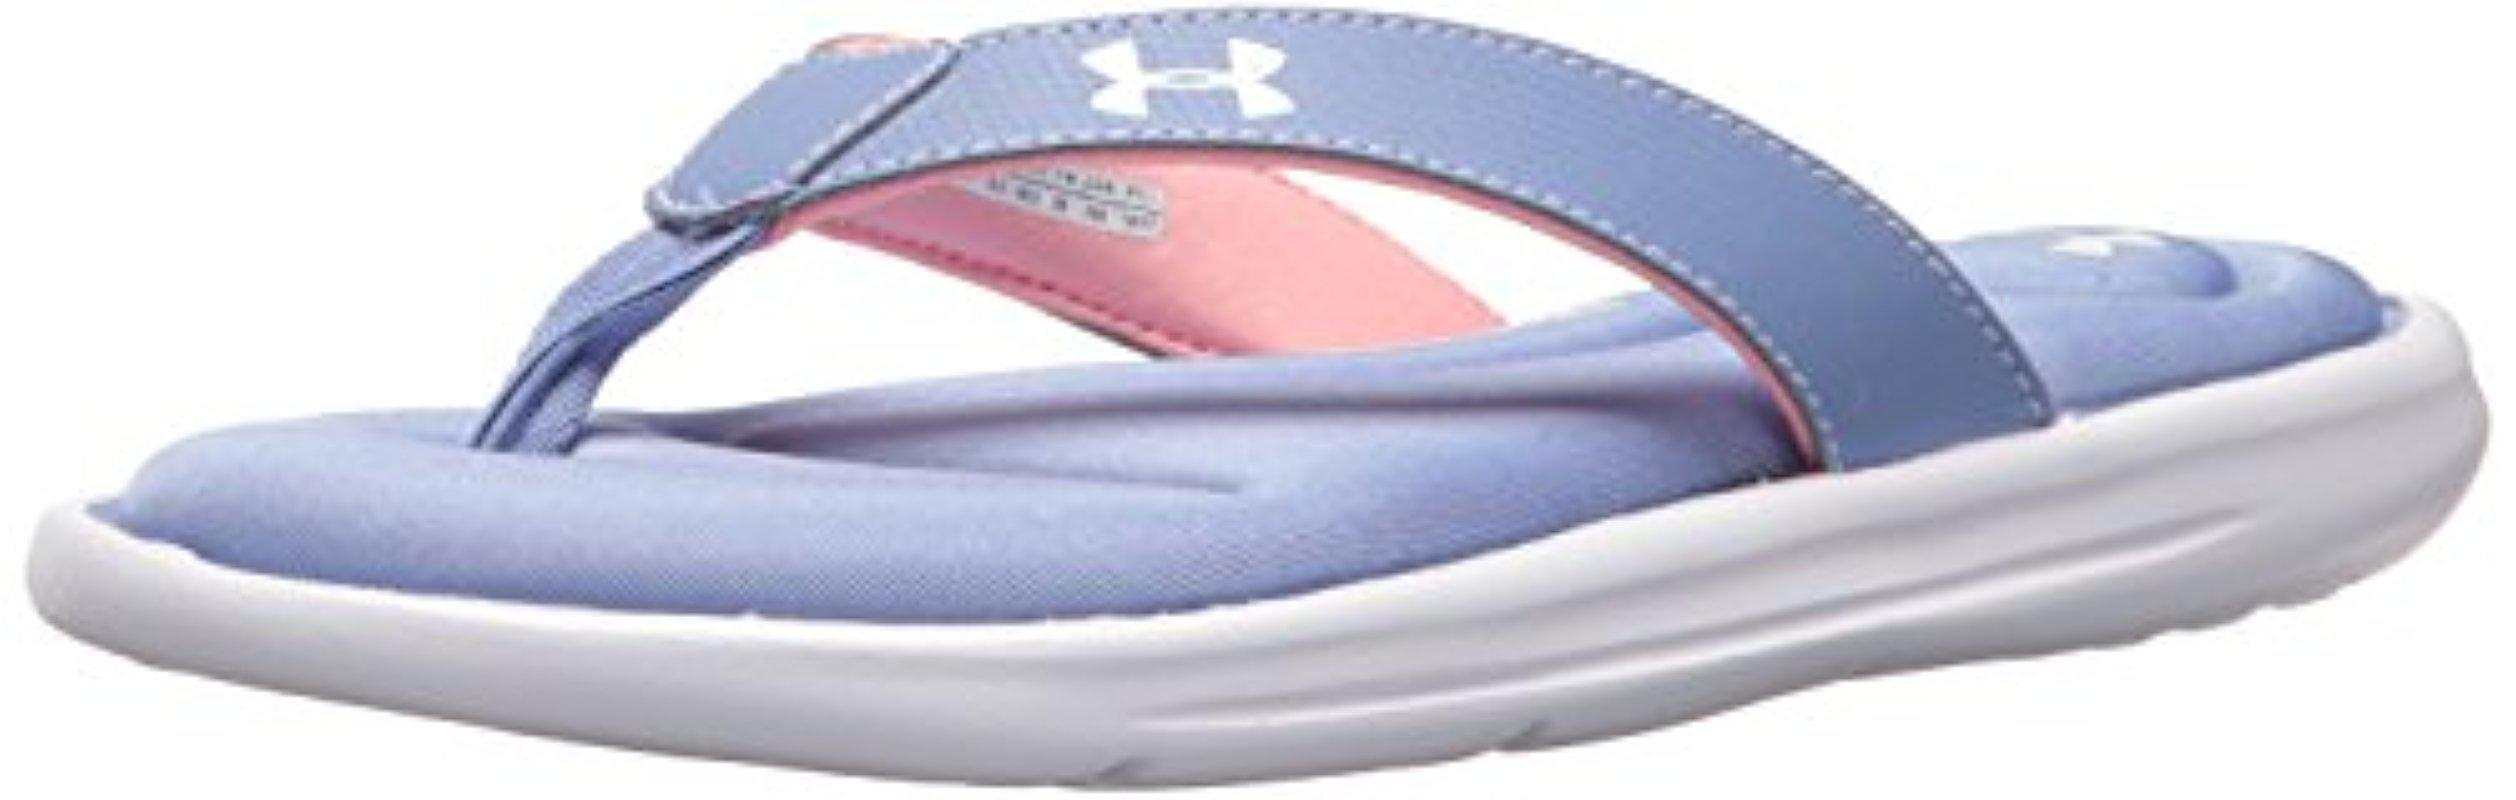 reputable site f54d5 dd631 Lyst - Under Armour Marbella Vi Thong Sneaker in Blue